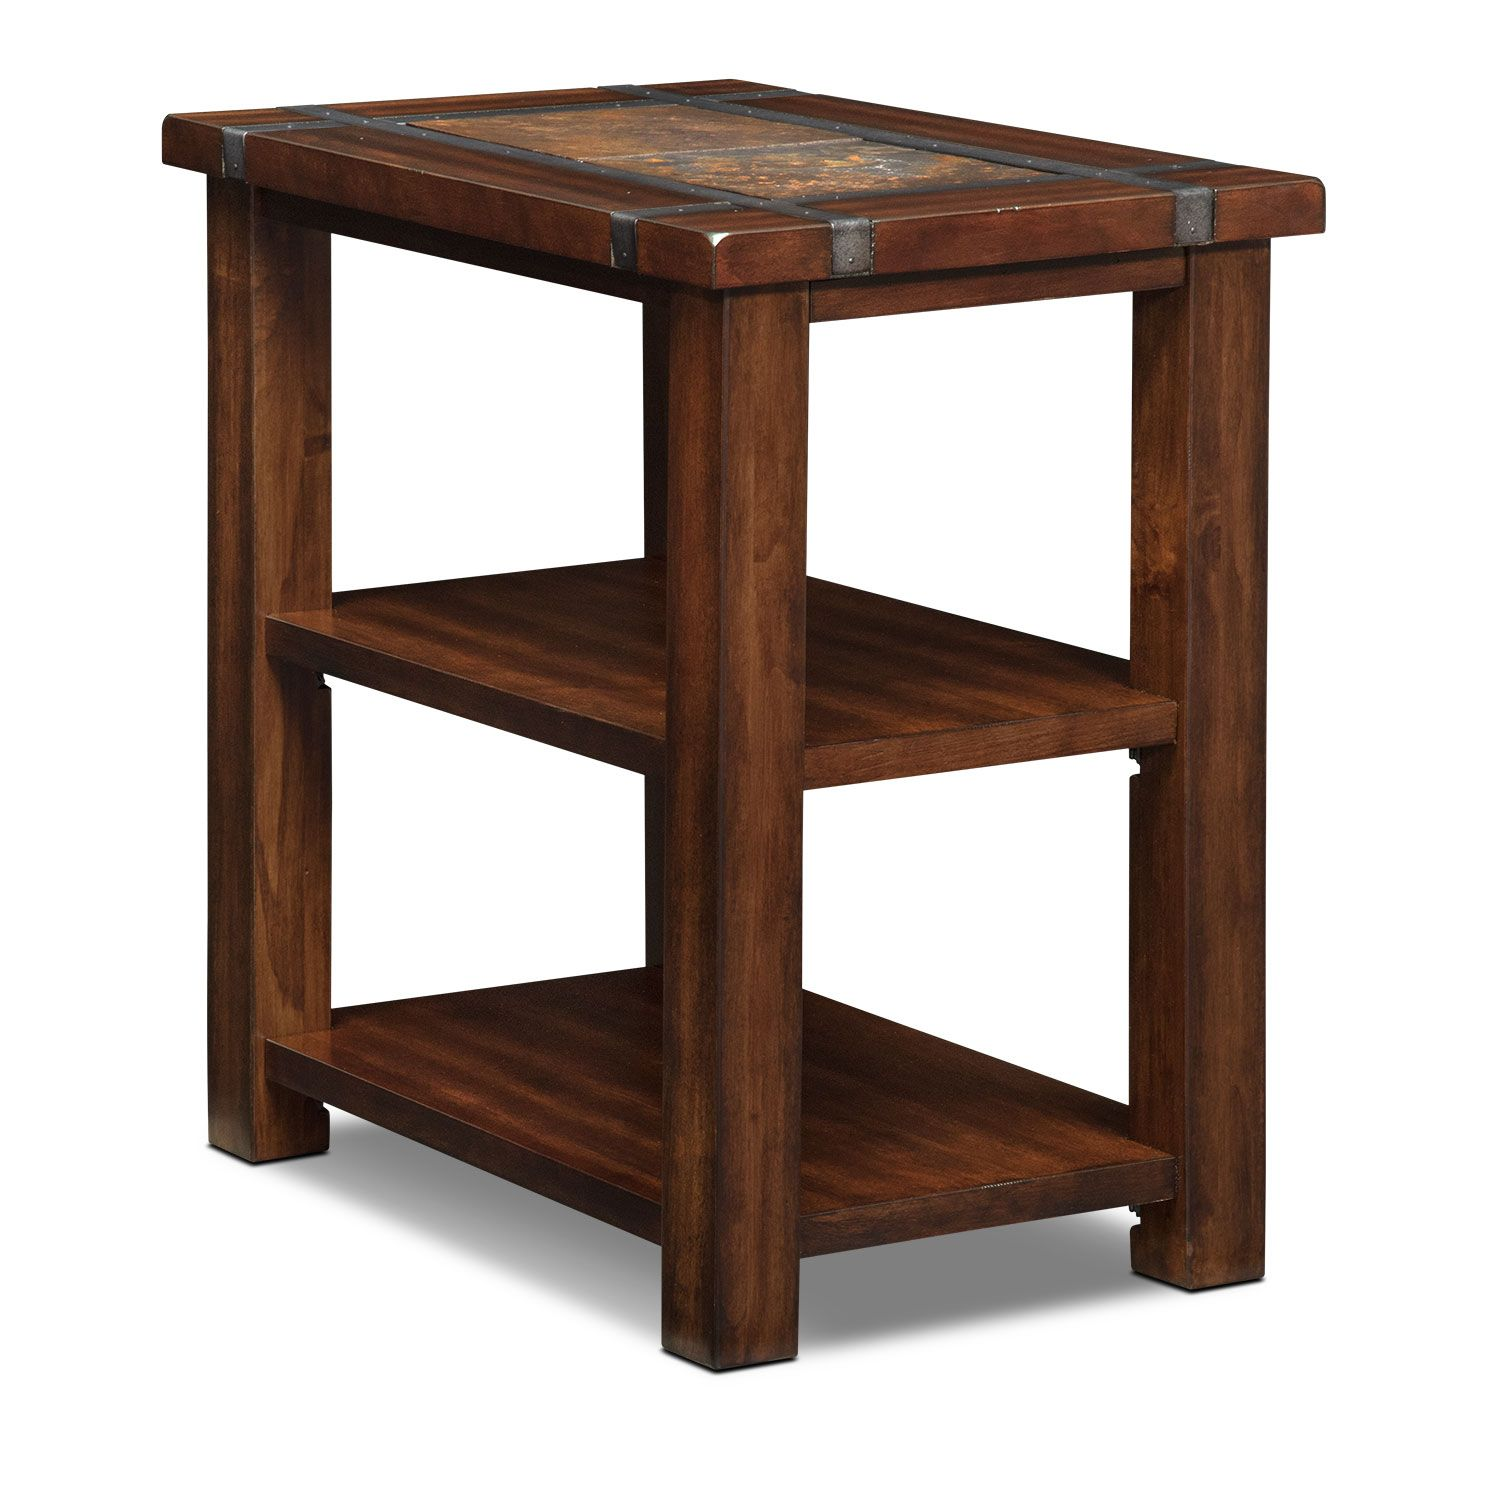 Accent and occasional furniture slate ridge chairside table cherry